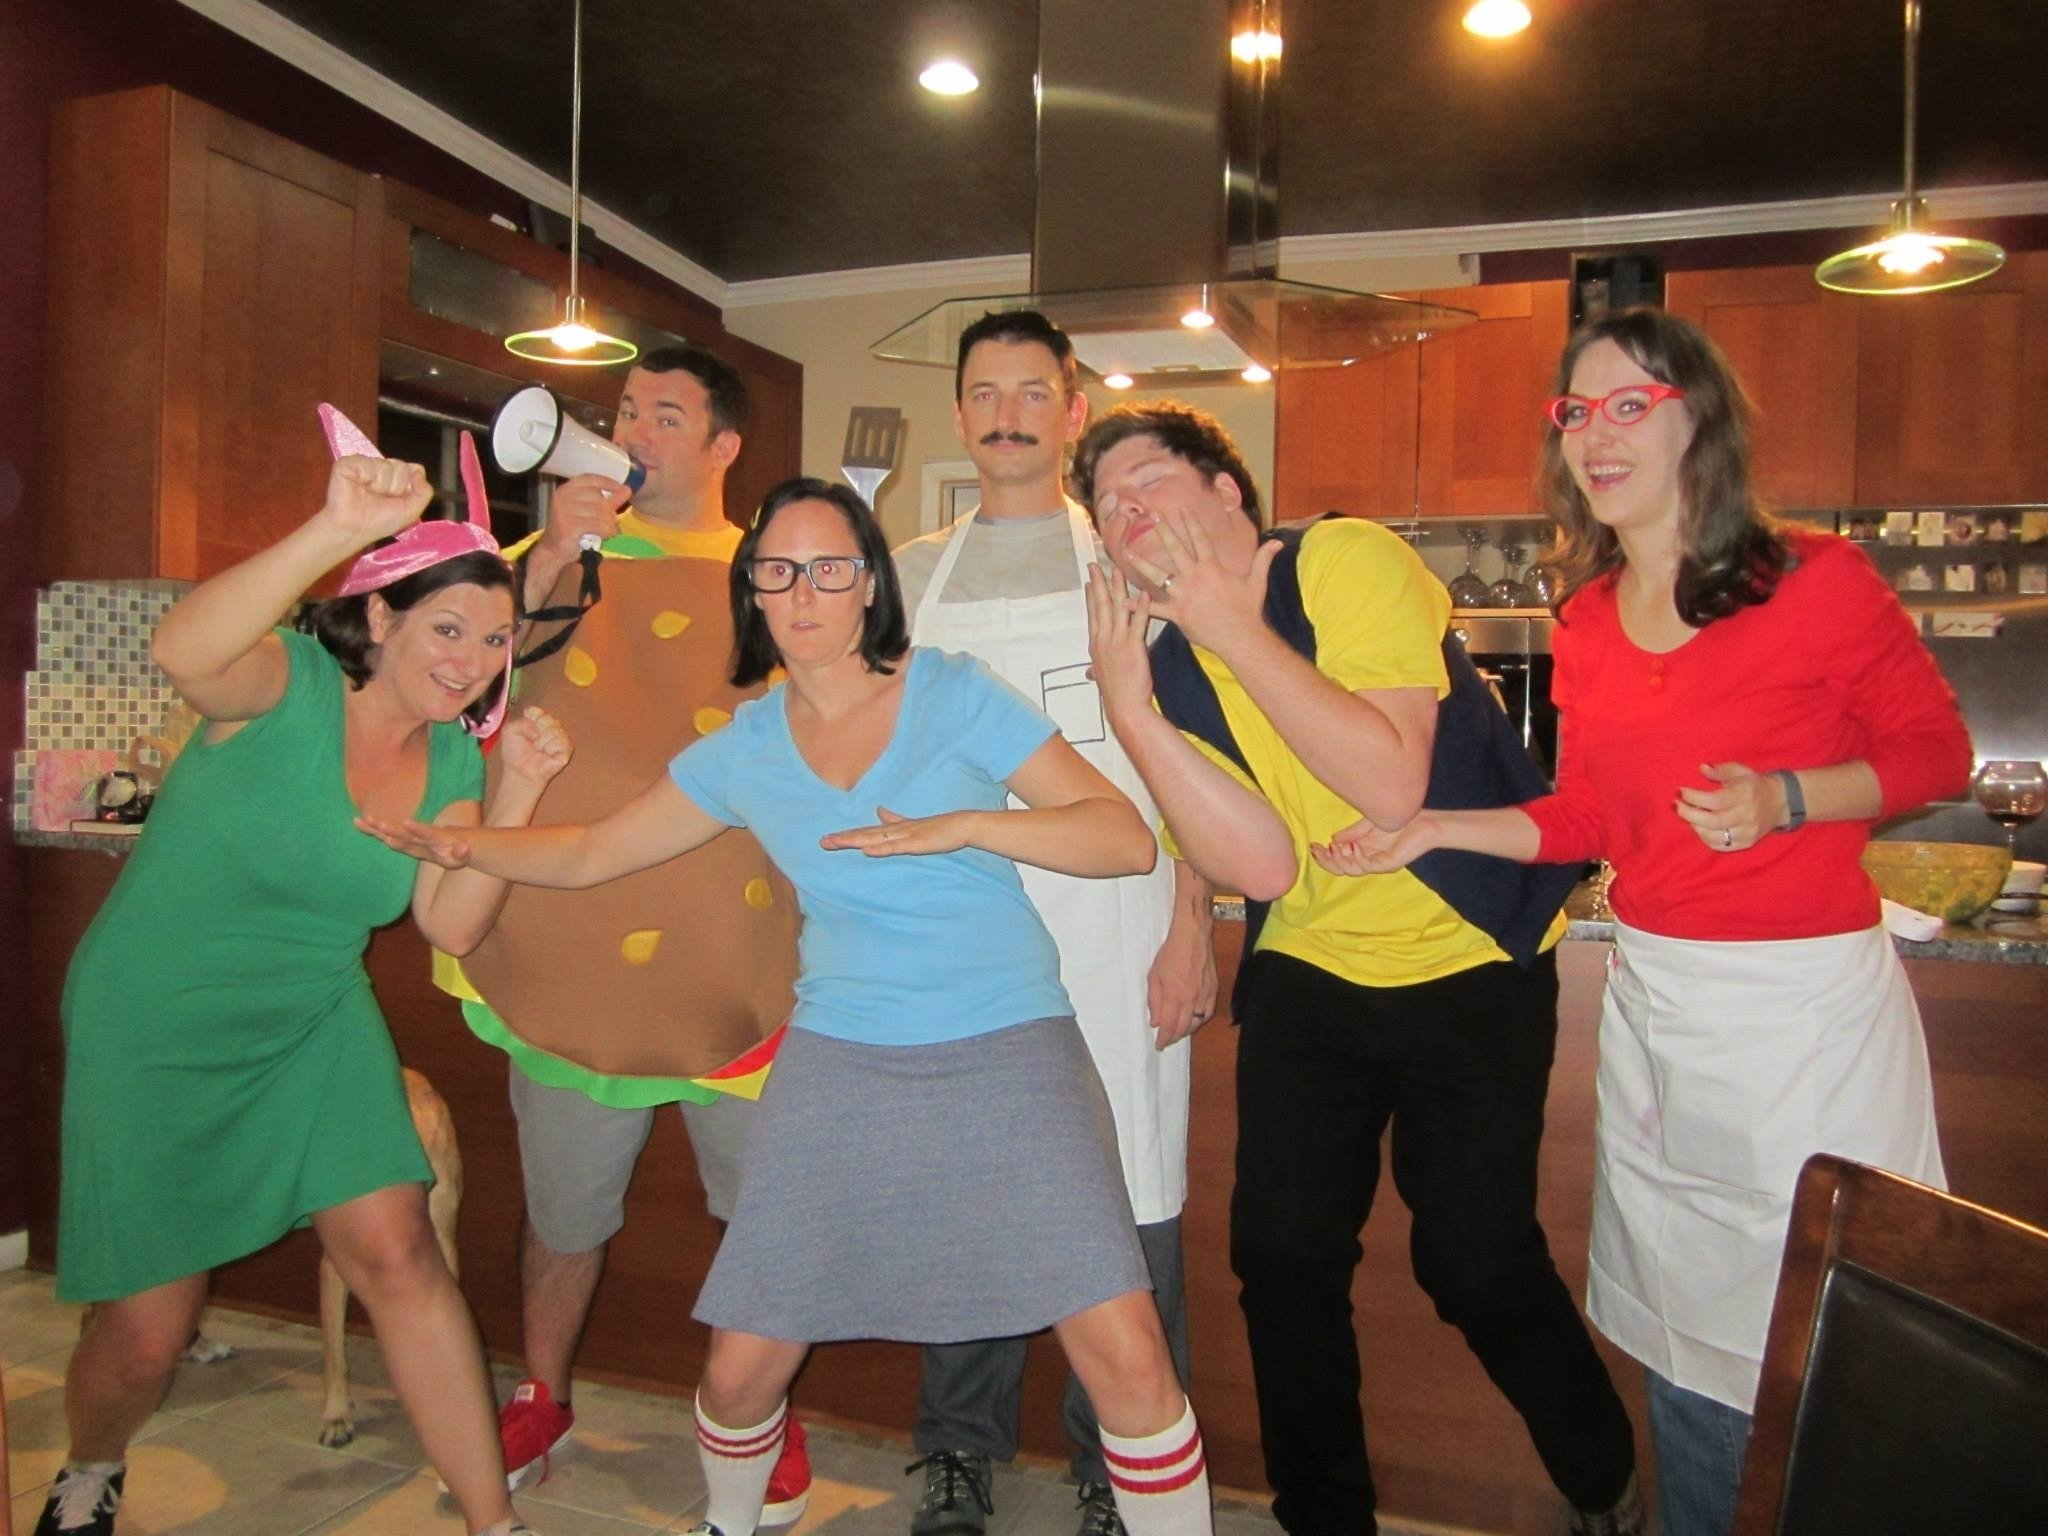 10 Best Group Costume Ideas For 4 People 4 people costume ideas best costumes ideas reviews 2020